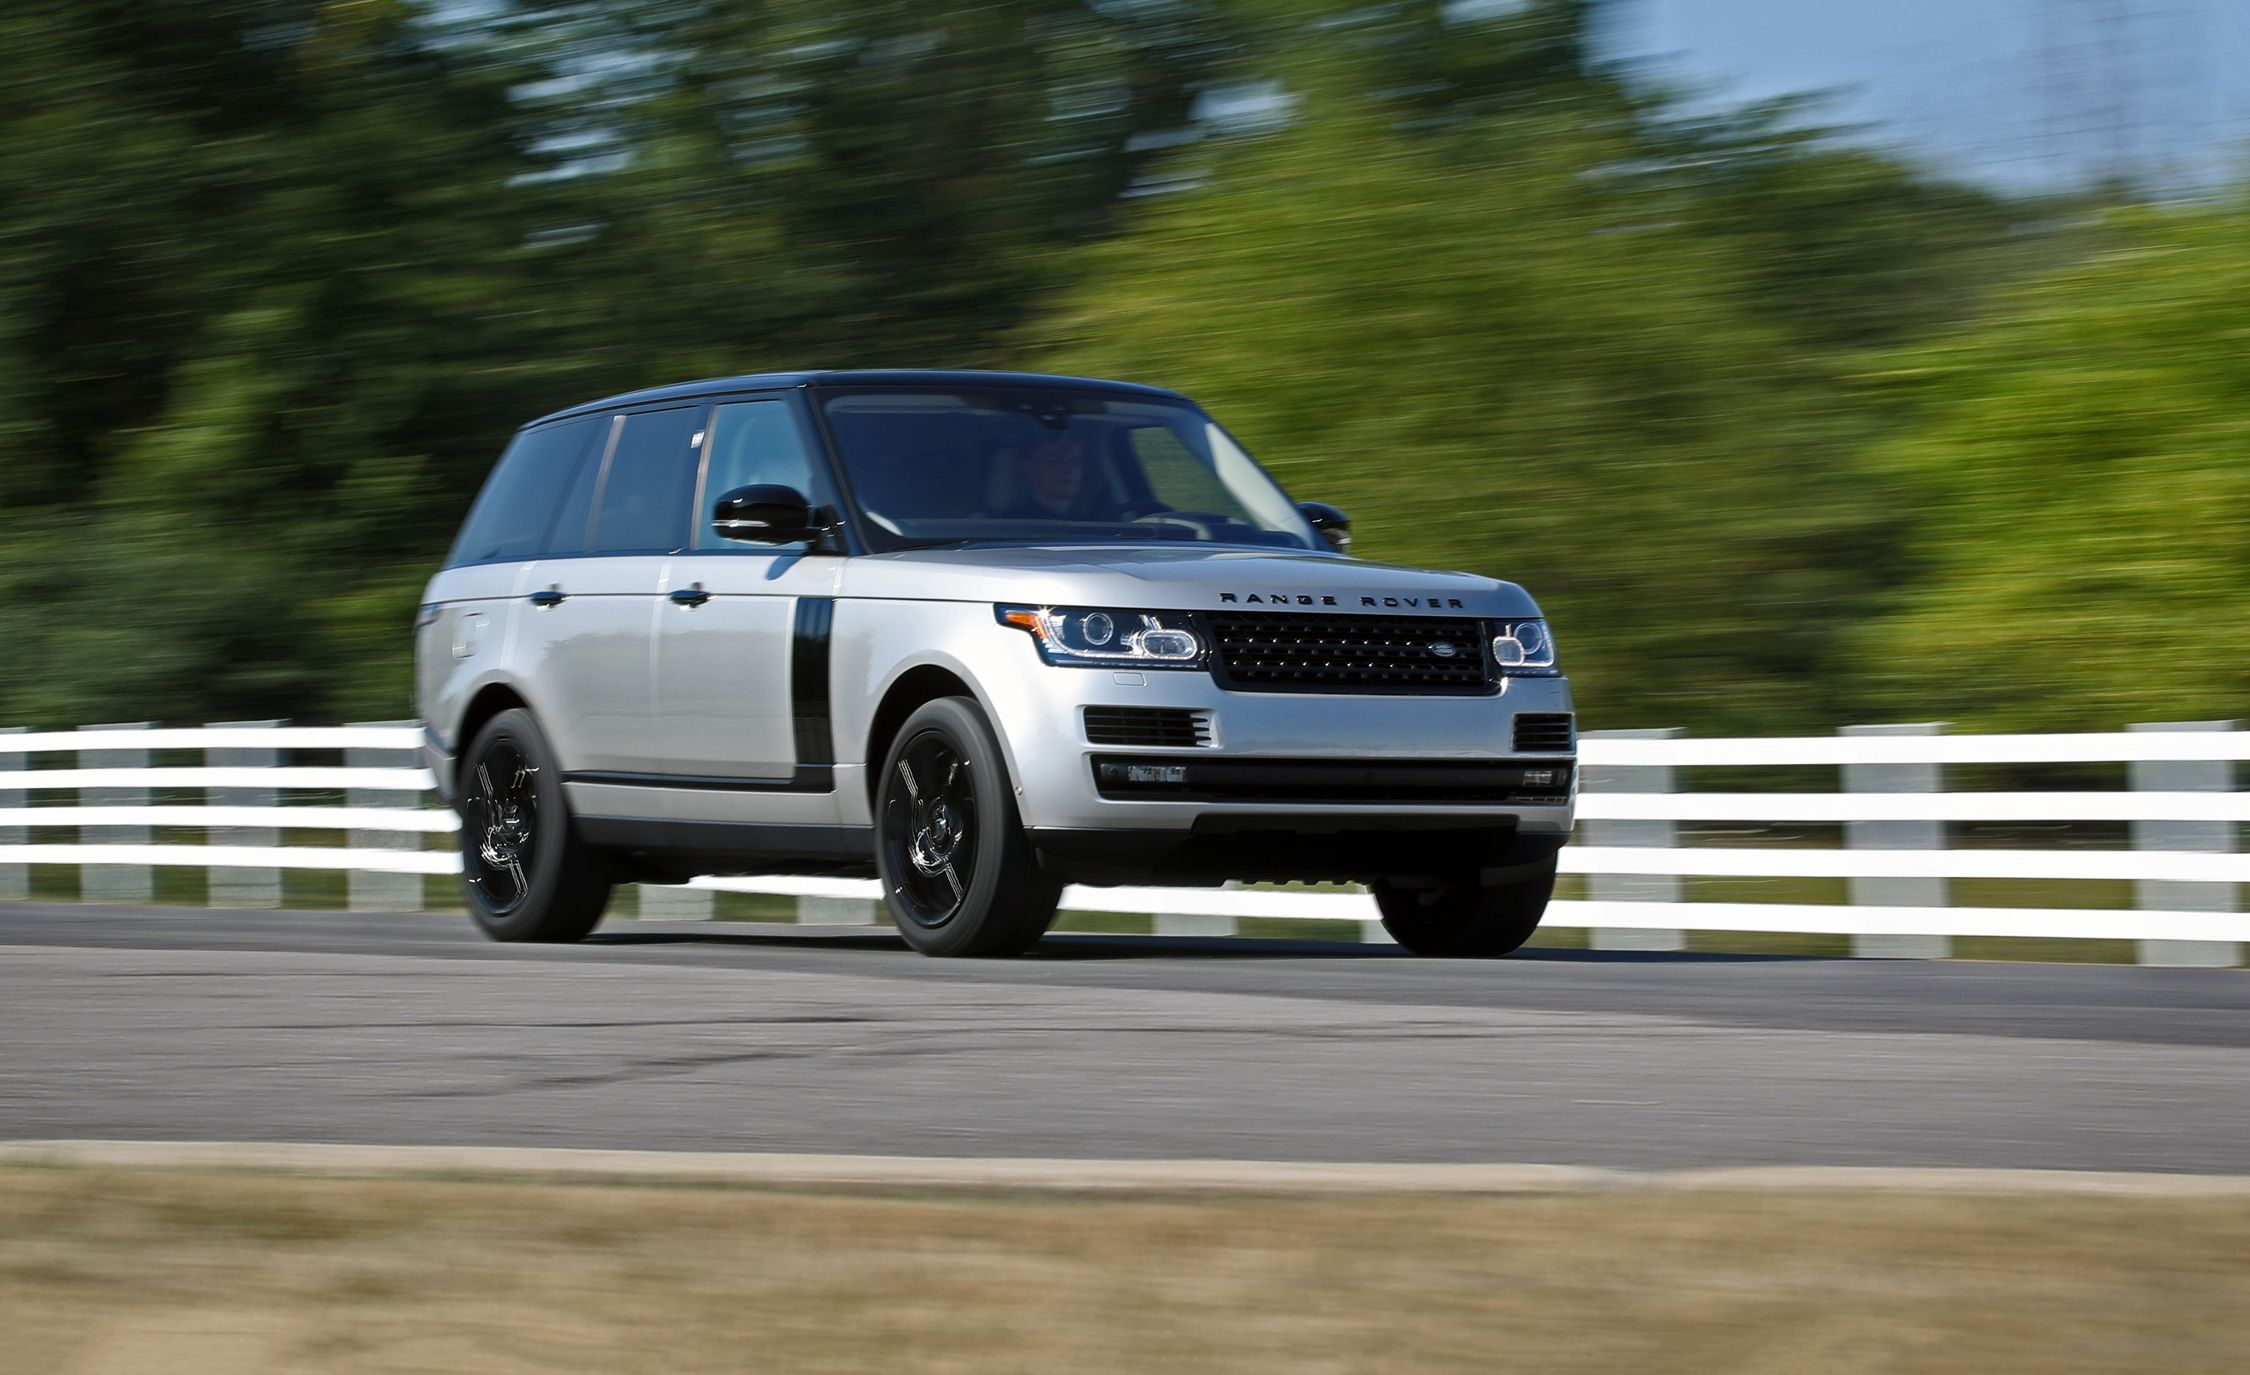 2017 Land Rover Range Rover / Range Rover Supercharged